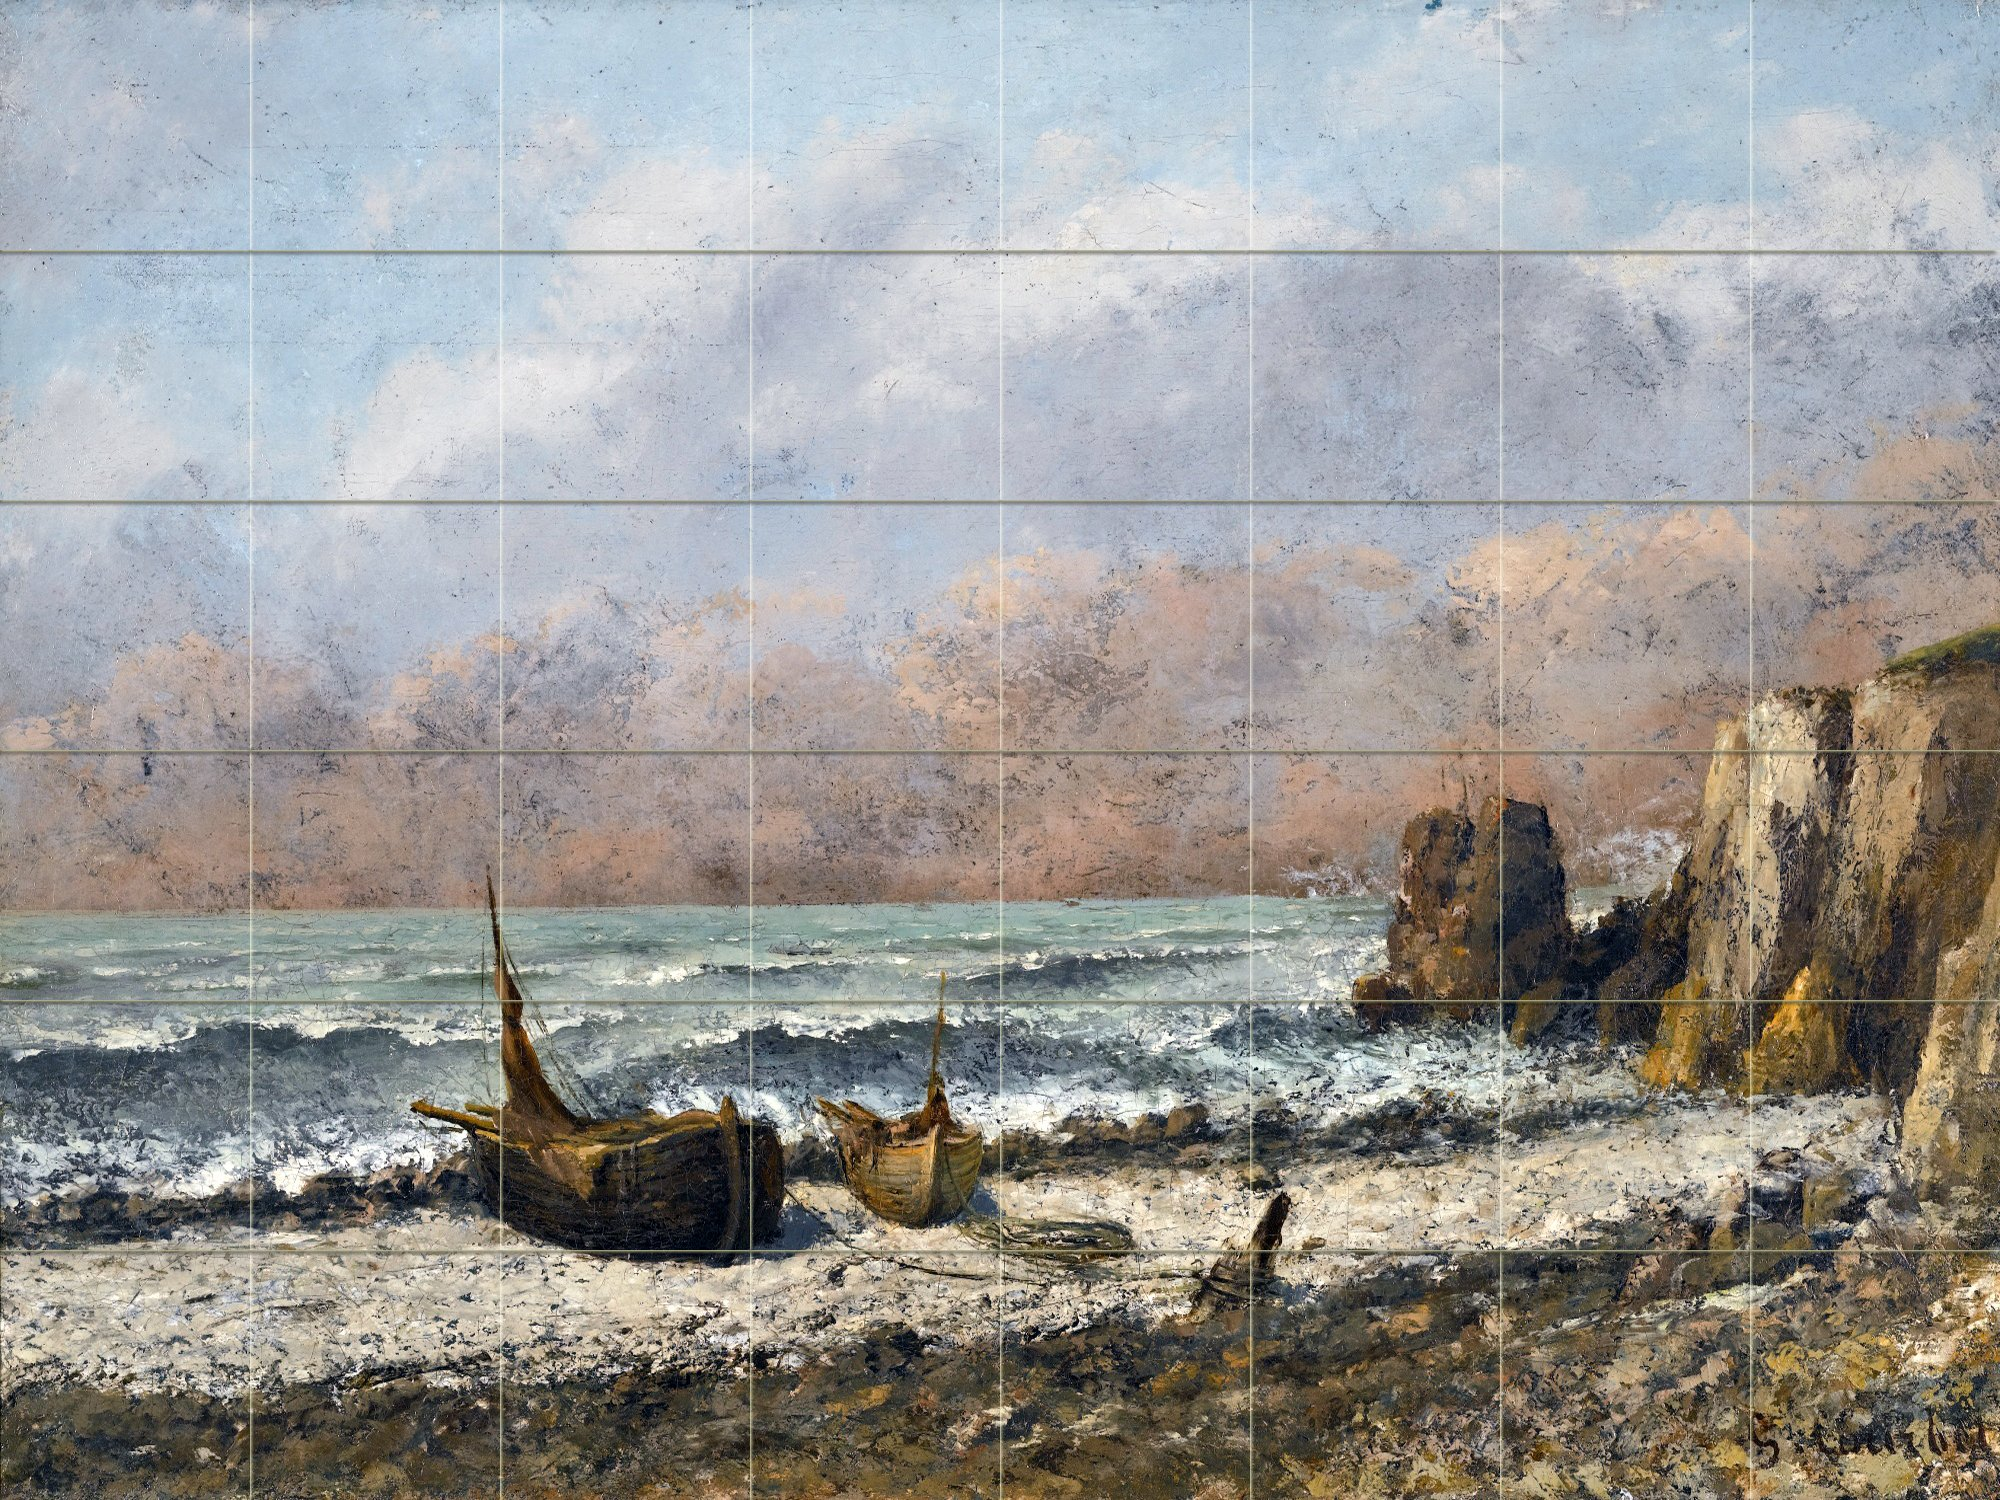 TWO BOATS ON THE BEACH by Gustave Courbet Tile Mural Kitchen Bathroom Wall Backsplash Behind Stove Range Sink Splashback 8x6 4'' Marble, Matte by FlekmanArt